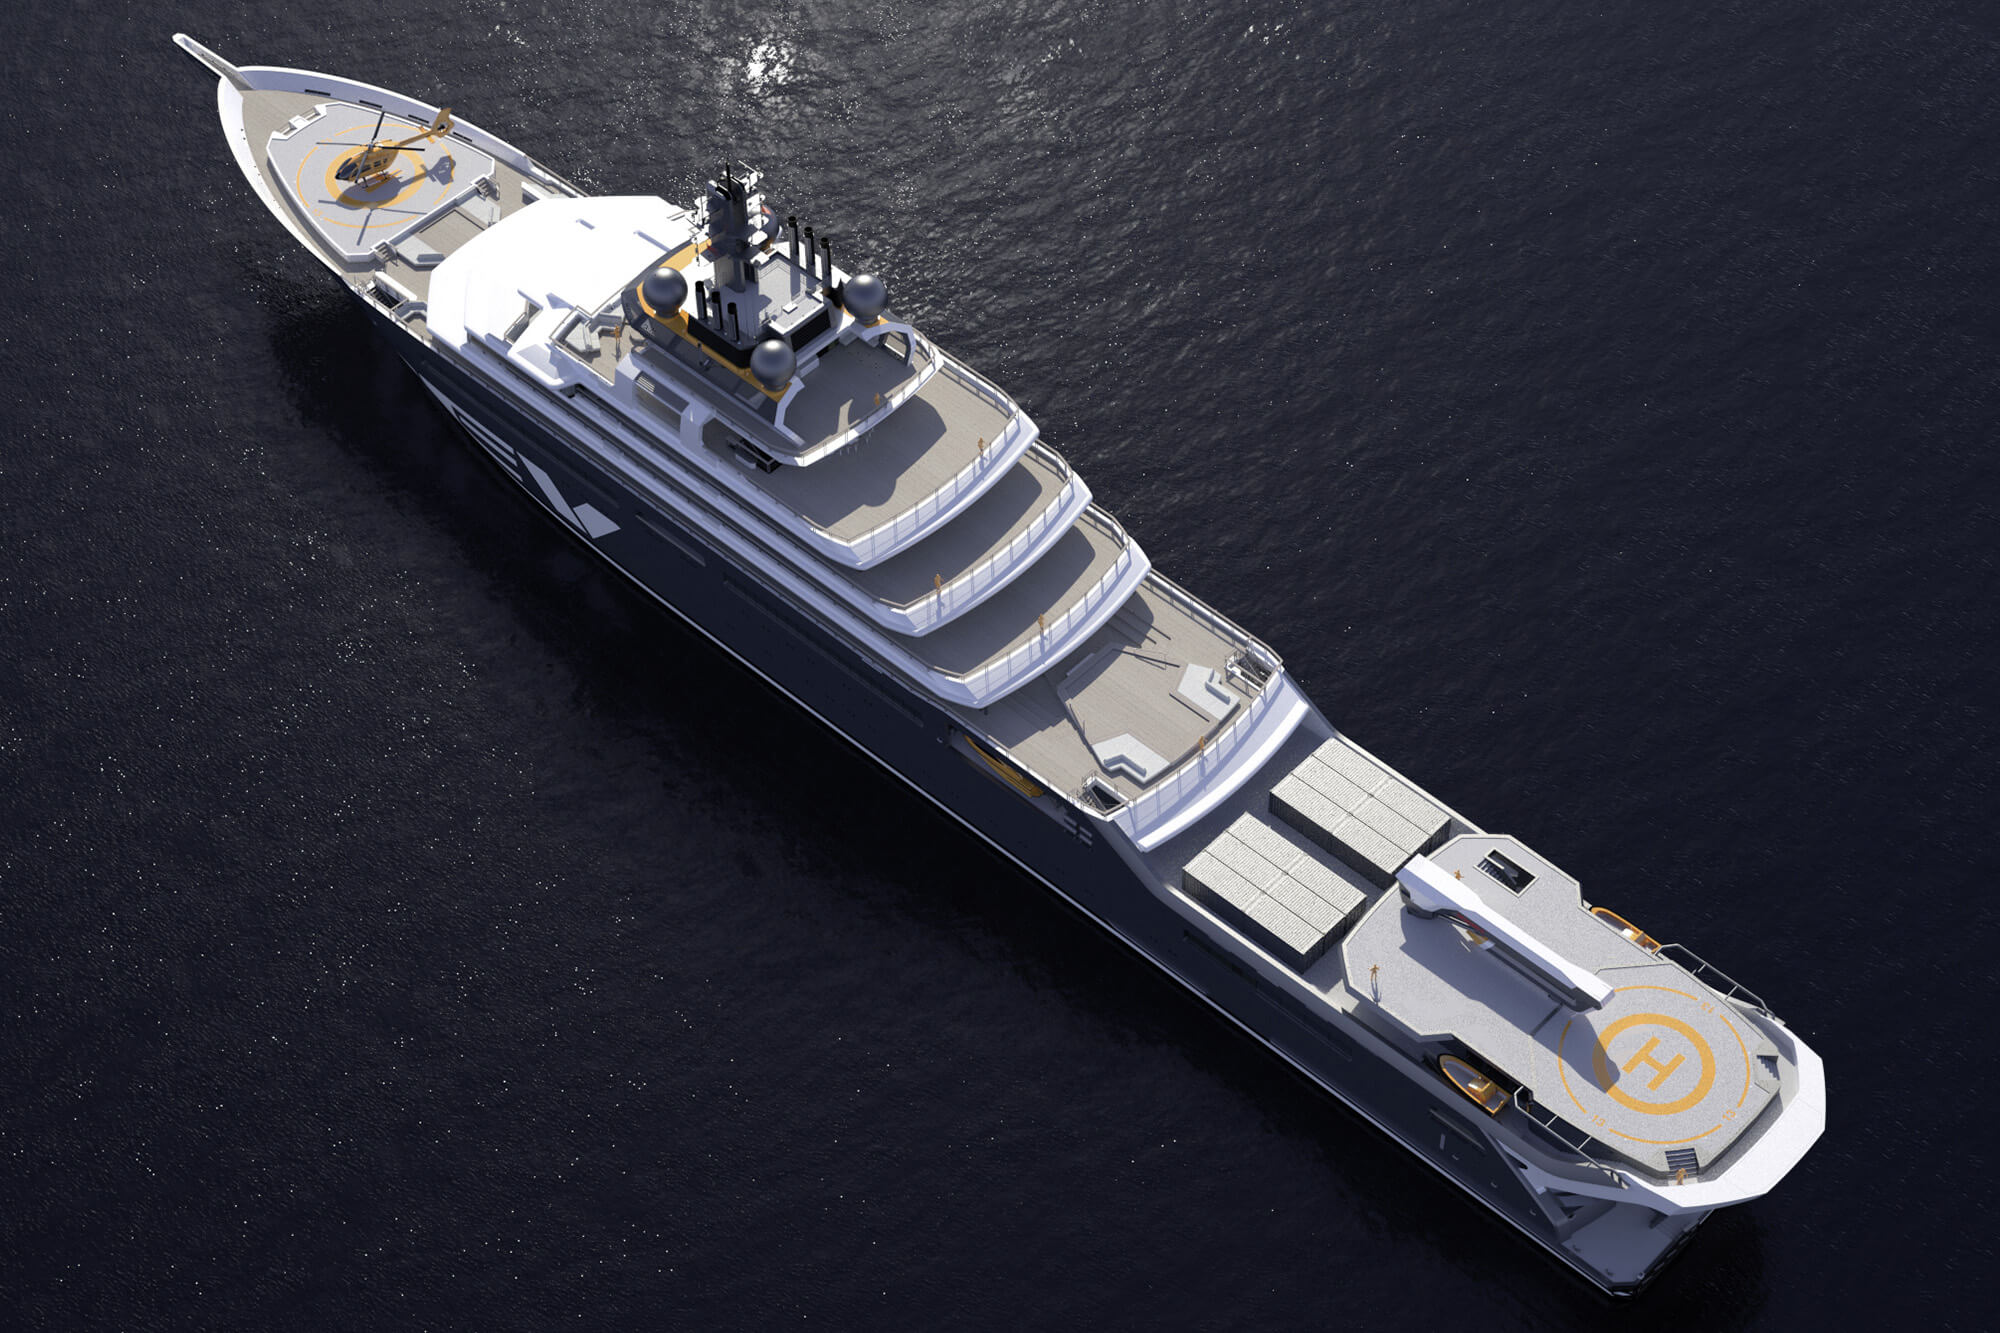 Sustainability in yacht deck construction redefined – Wolz Nautic signs order for fitting out the 182 metre yacht REV